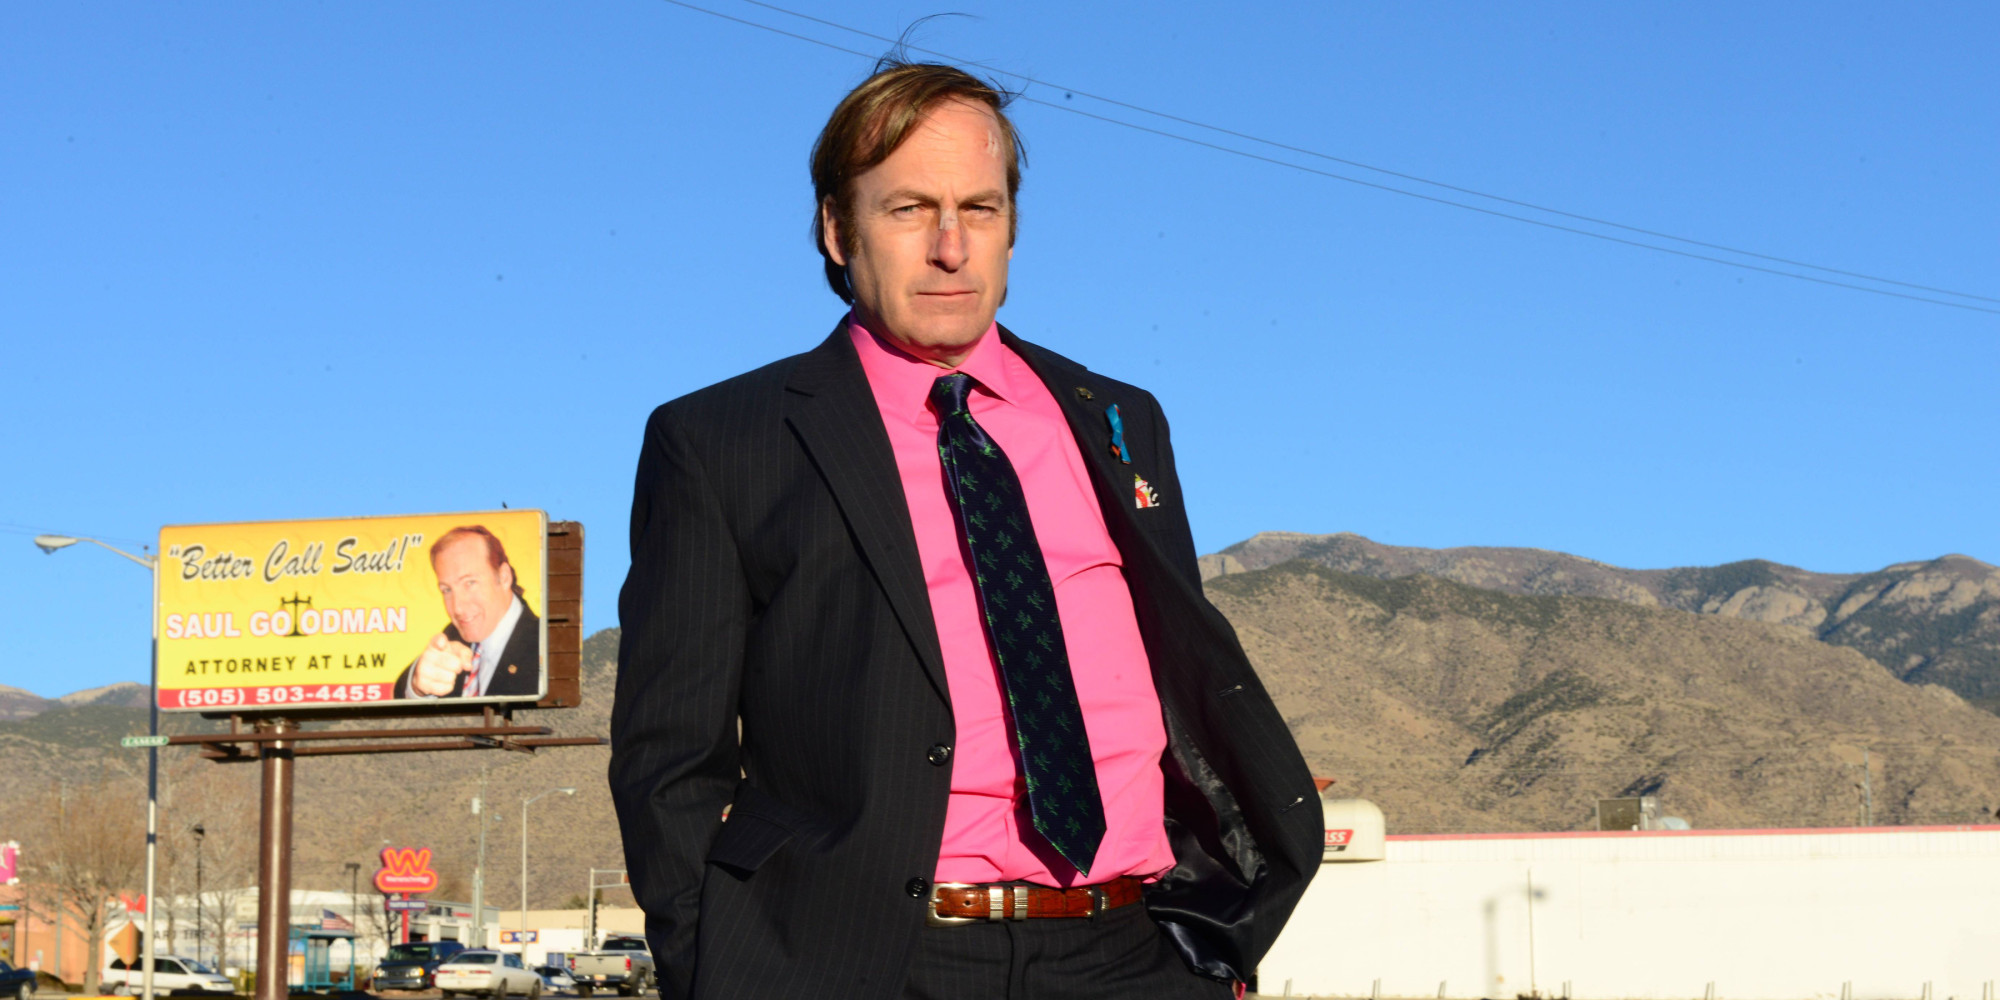 39 better call saul 39 goes to court updates on 39 breaking bad for Better call saul